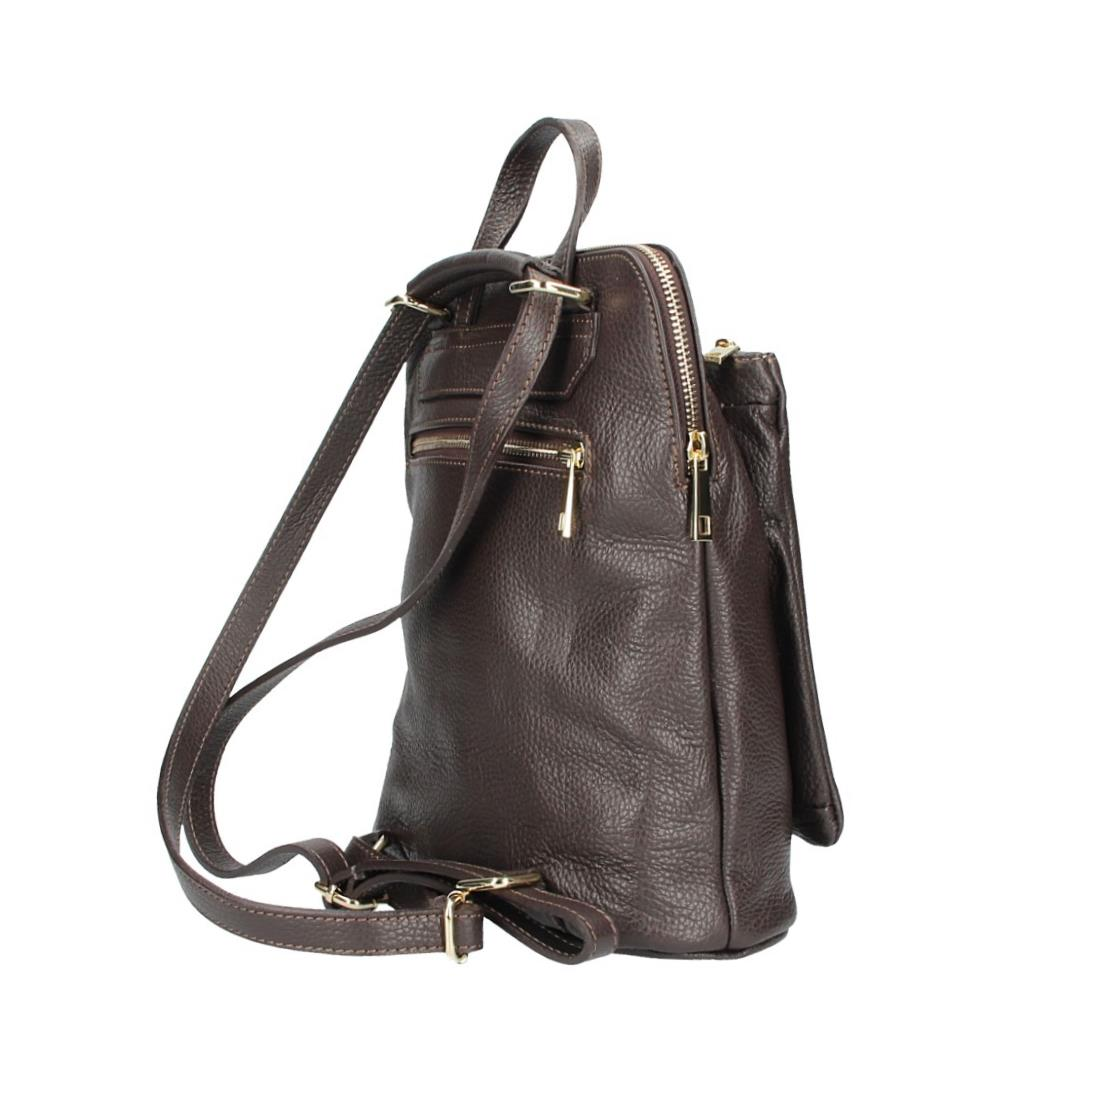 ITALy-DAMEN-LEDER-Reise-RUCKSACK-SchulterTasche-Shopper-Backpack-Ledertasche-BAG Indexbild 94